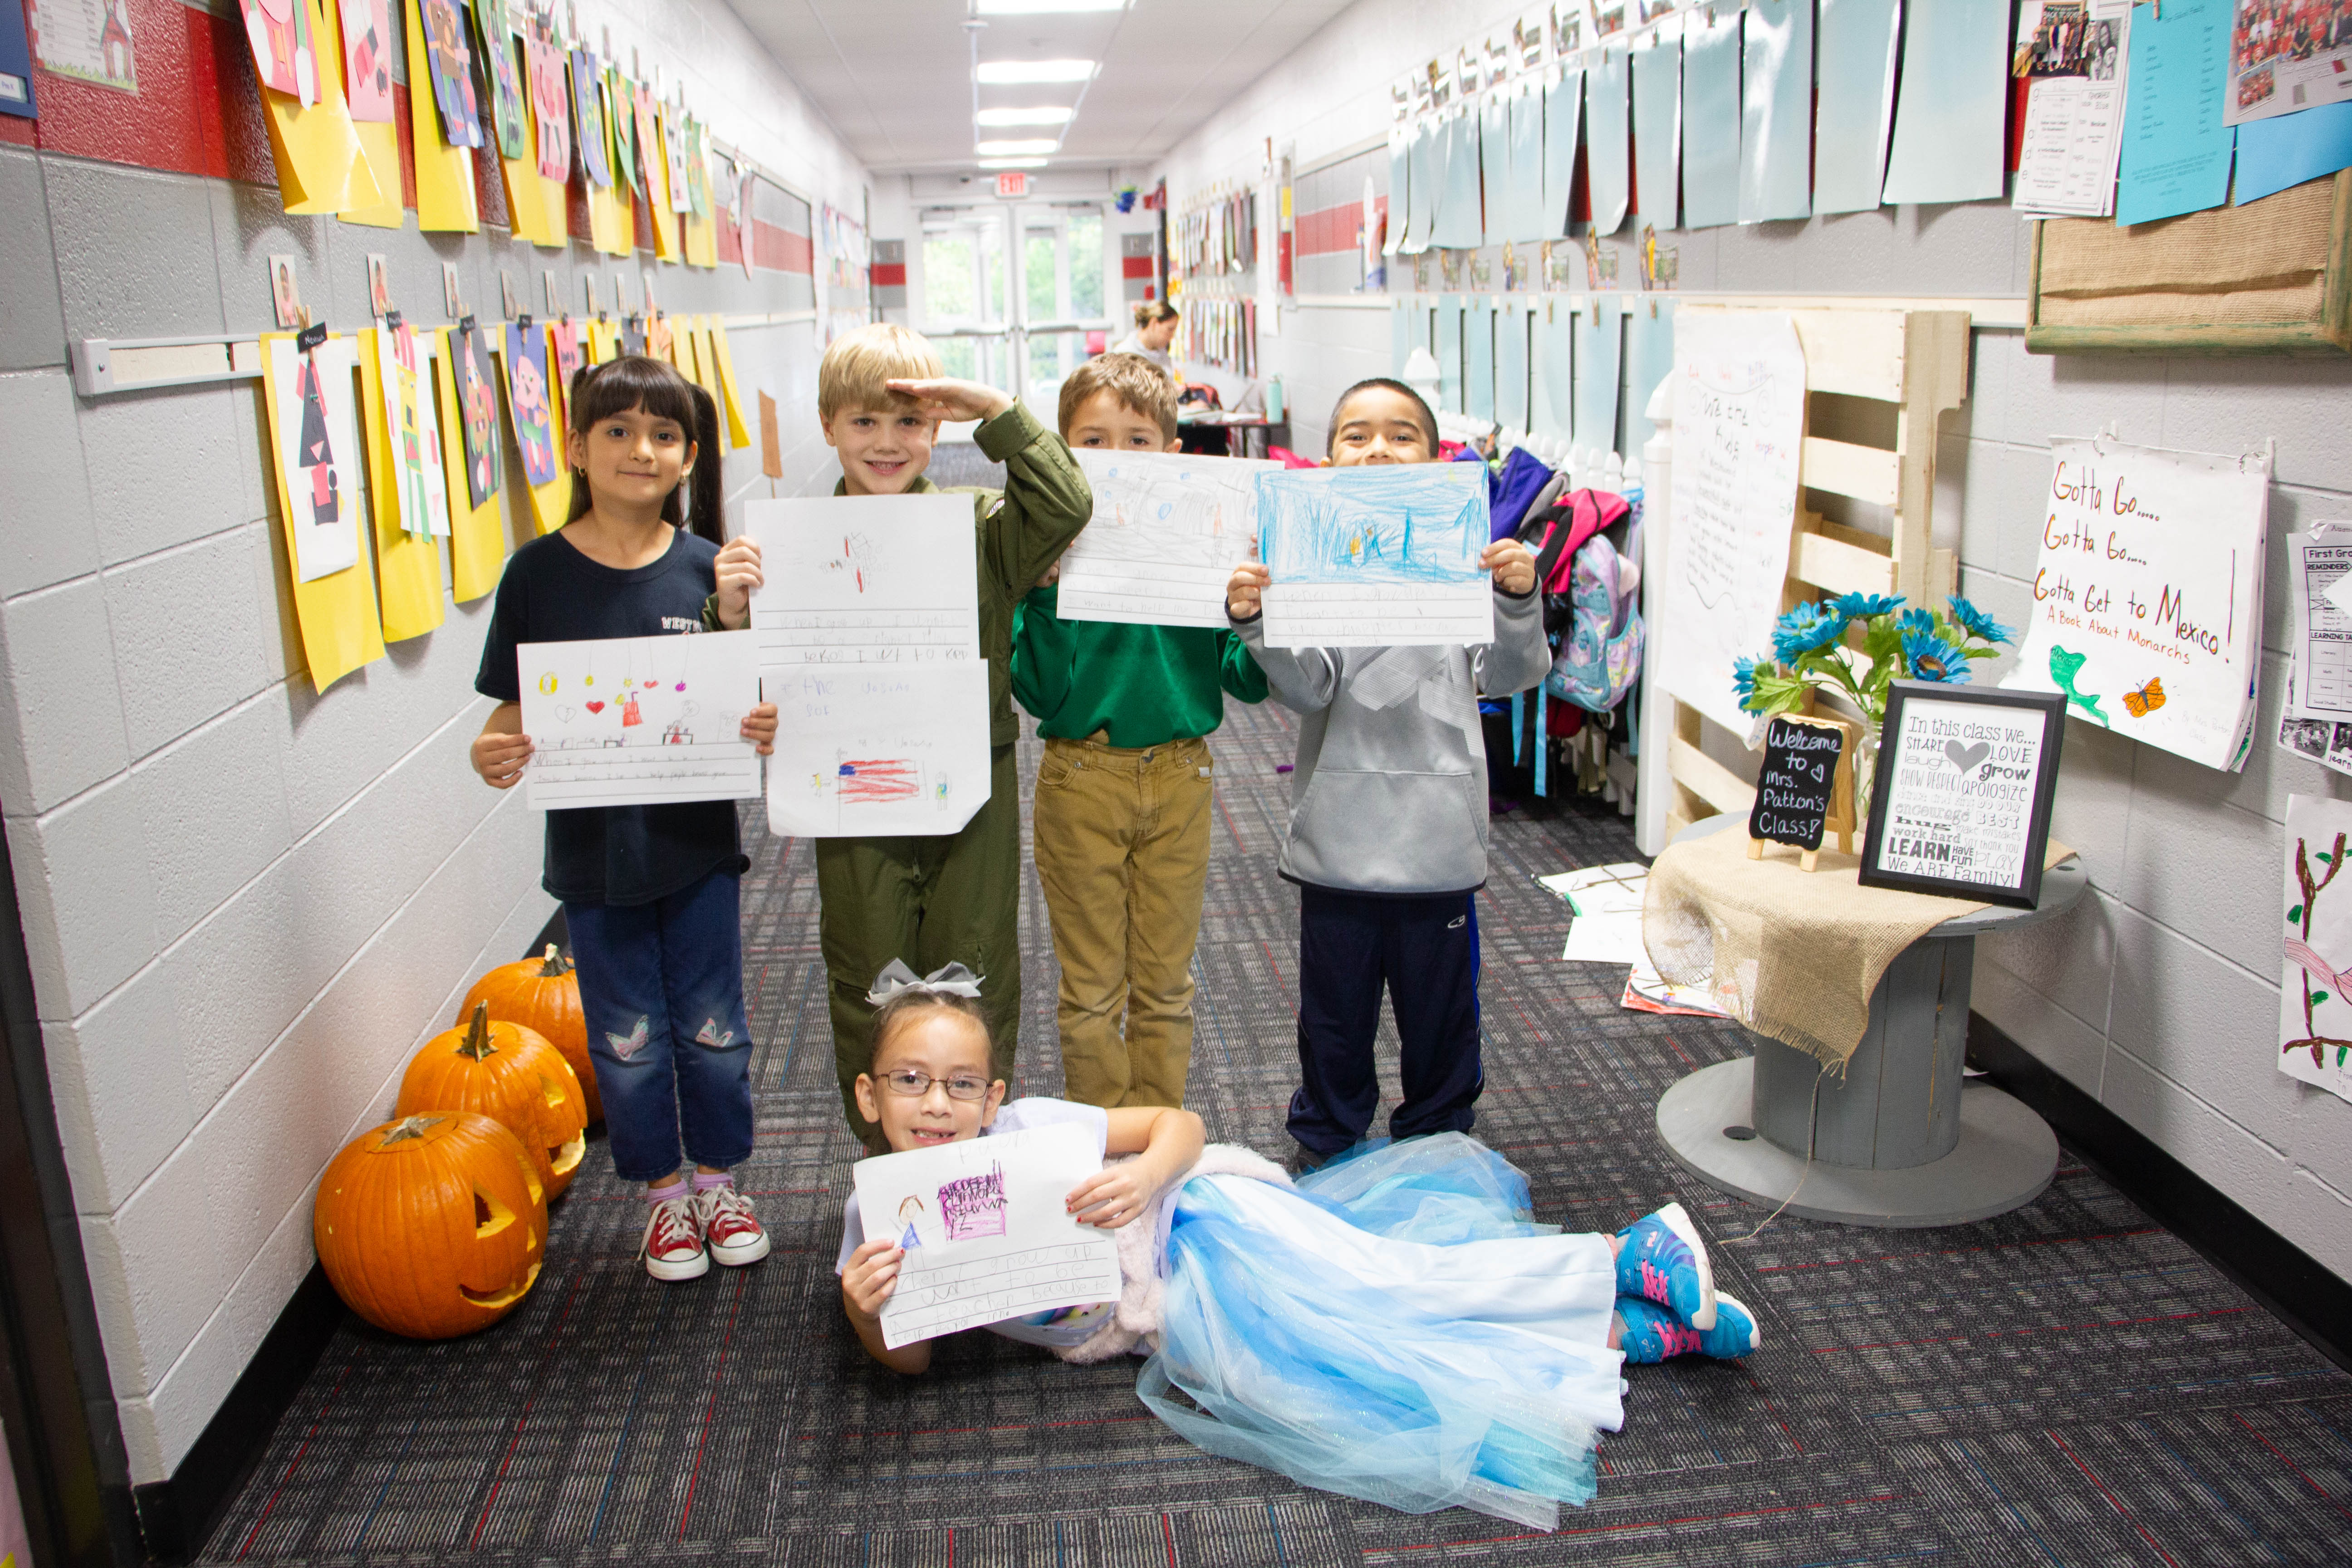 Students in costumes holding signs describing what they want to be when they grow up